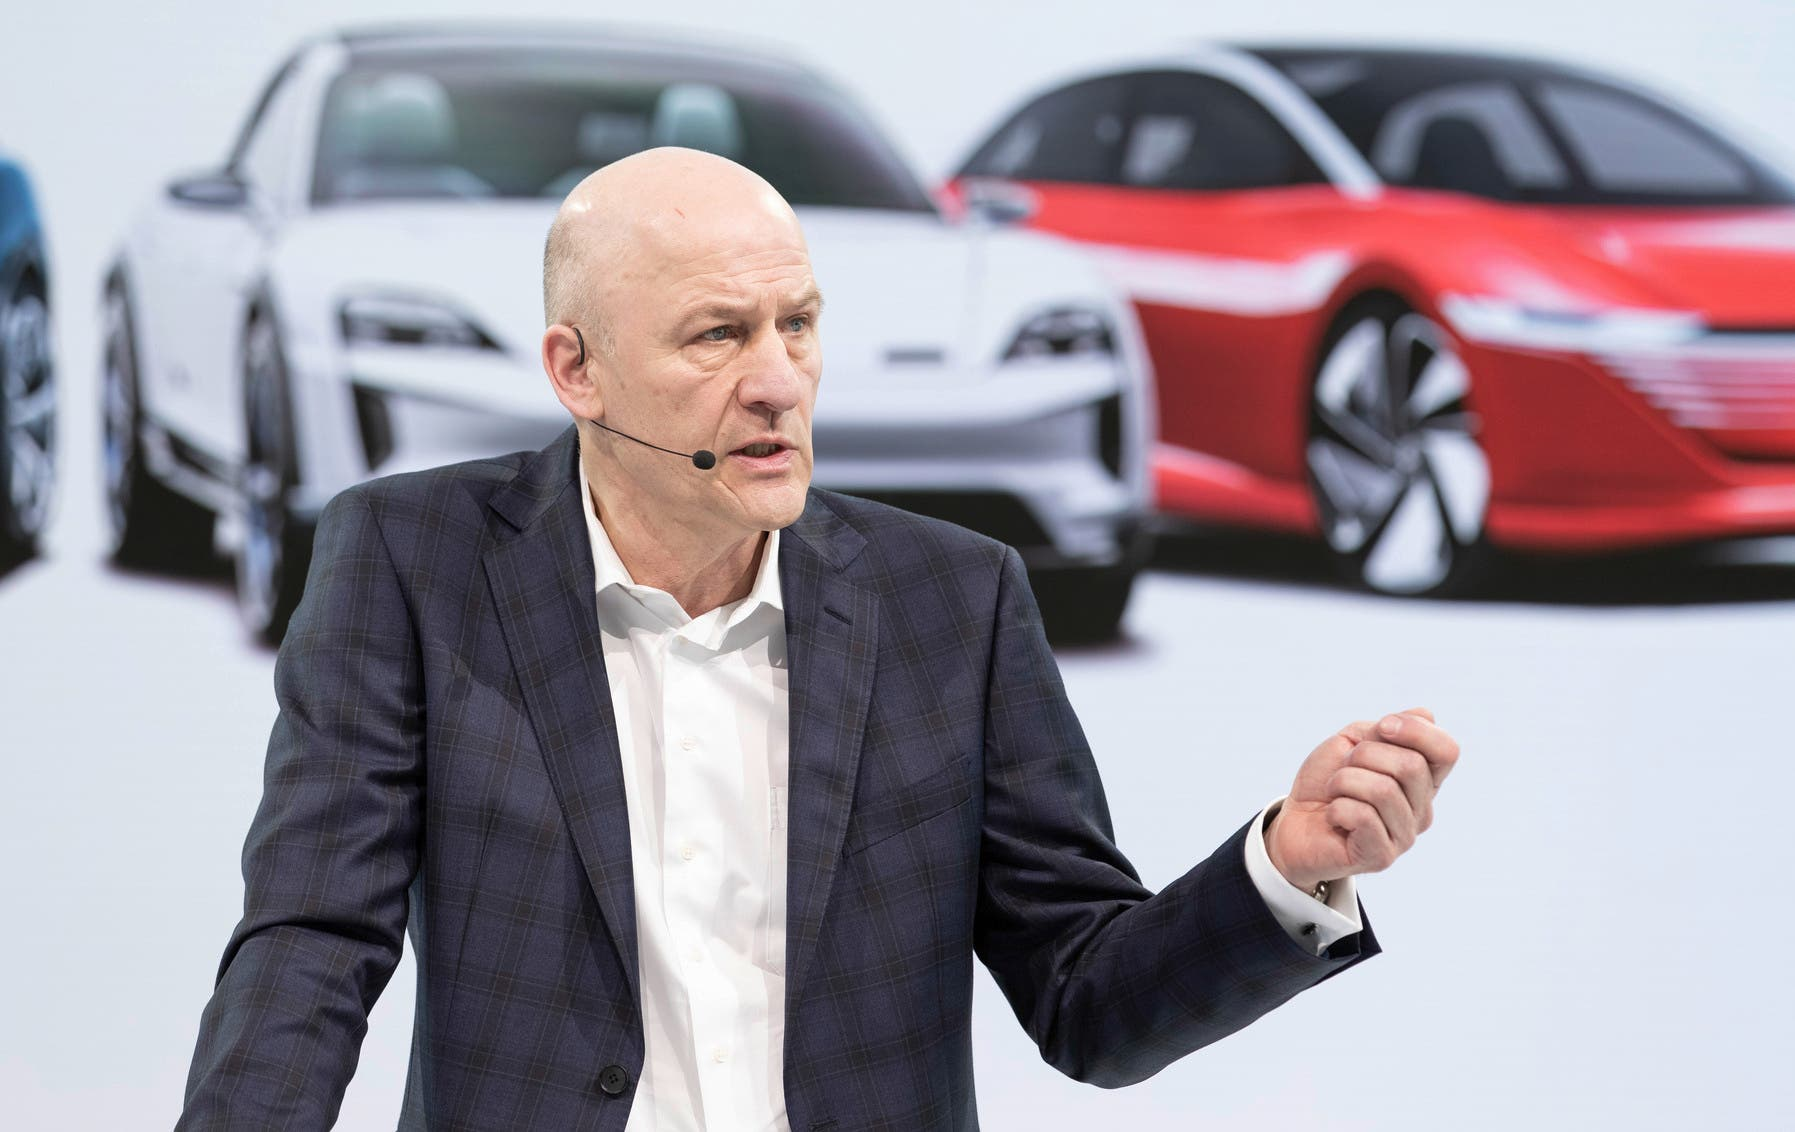 Volkswagen Boosts Electric Car Investment & Sales Goals — 22 Million Electric Cars By 2028 - CleanTechnica